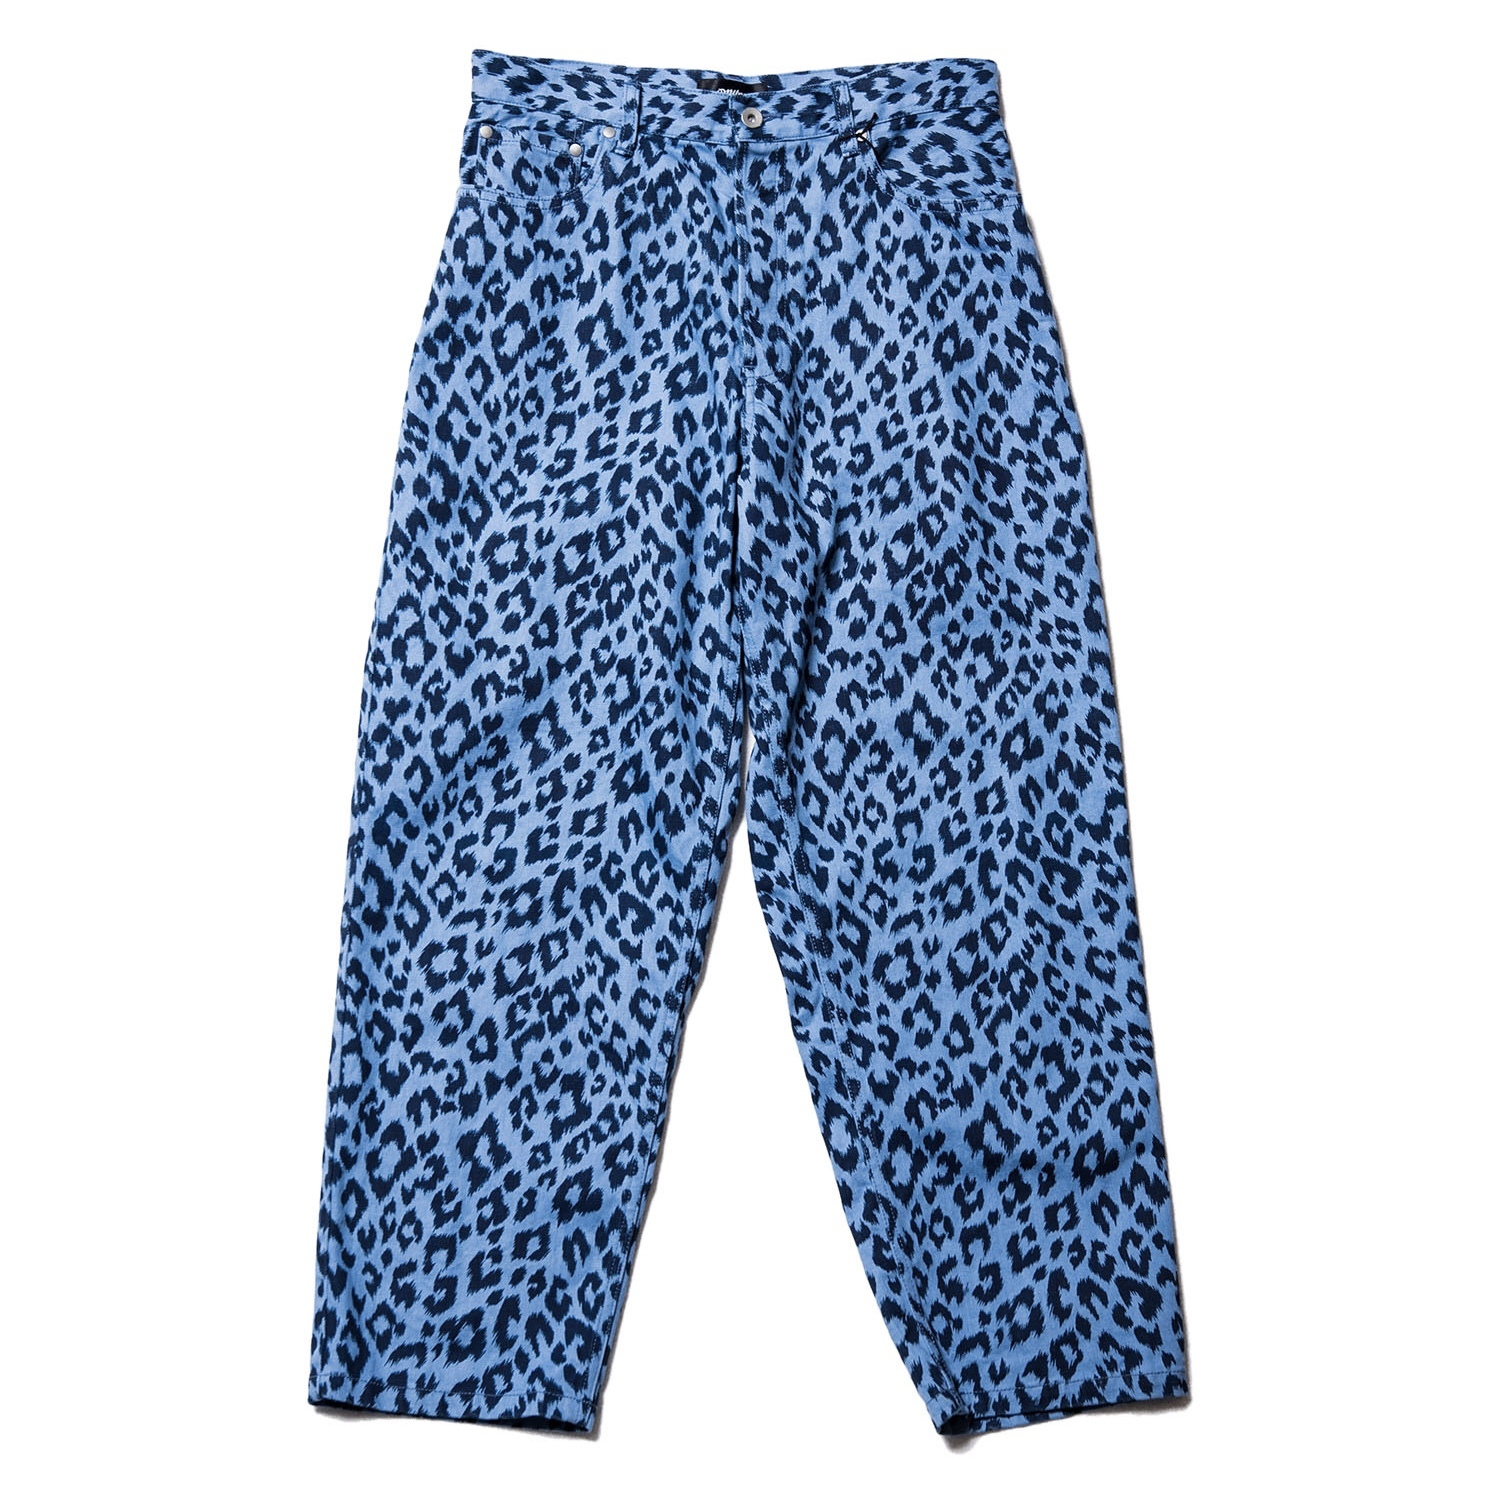 Leopard denim pants / INDIGO - 画像1